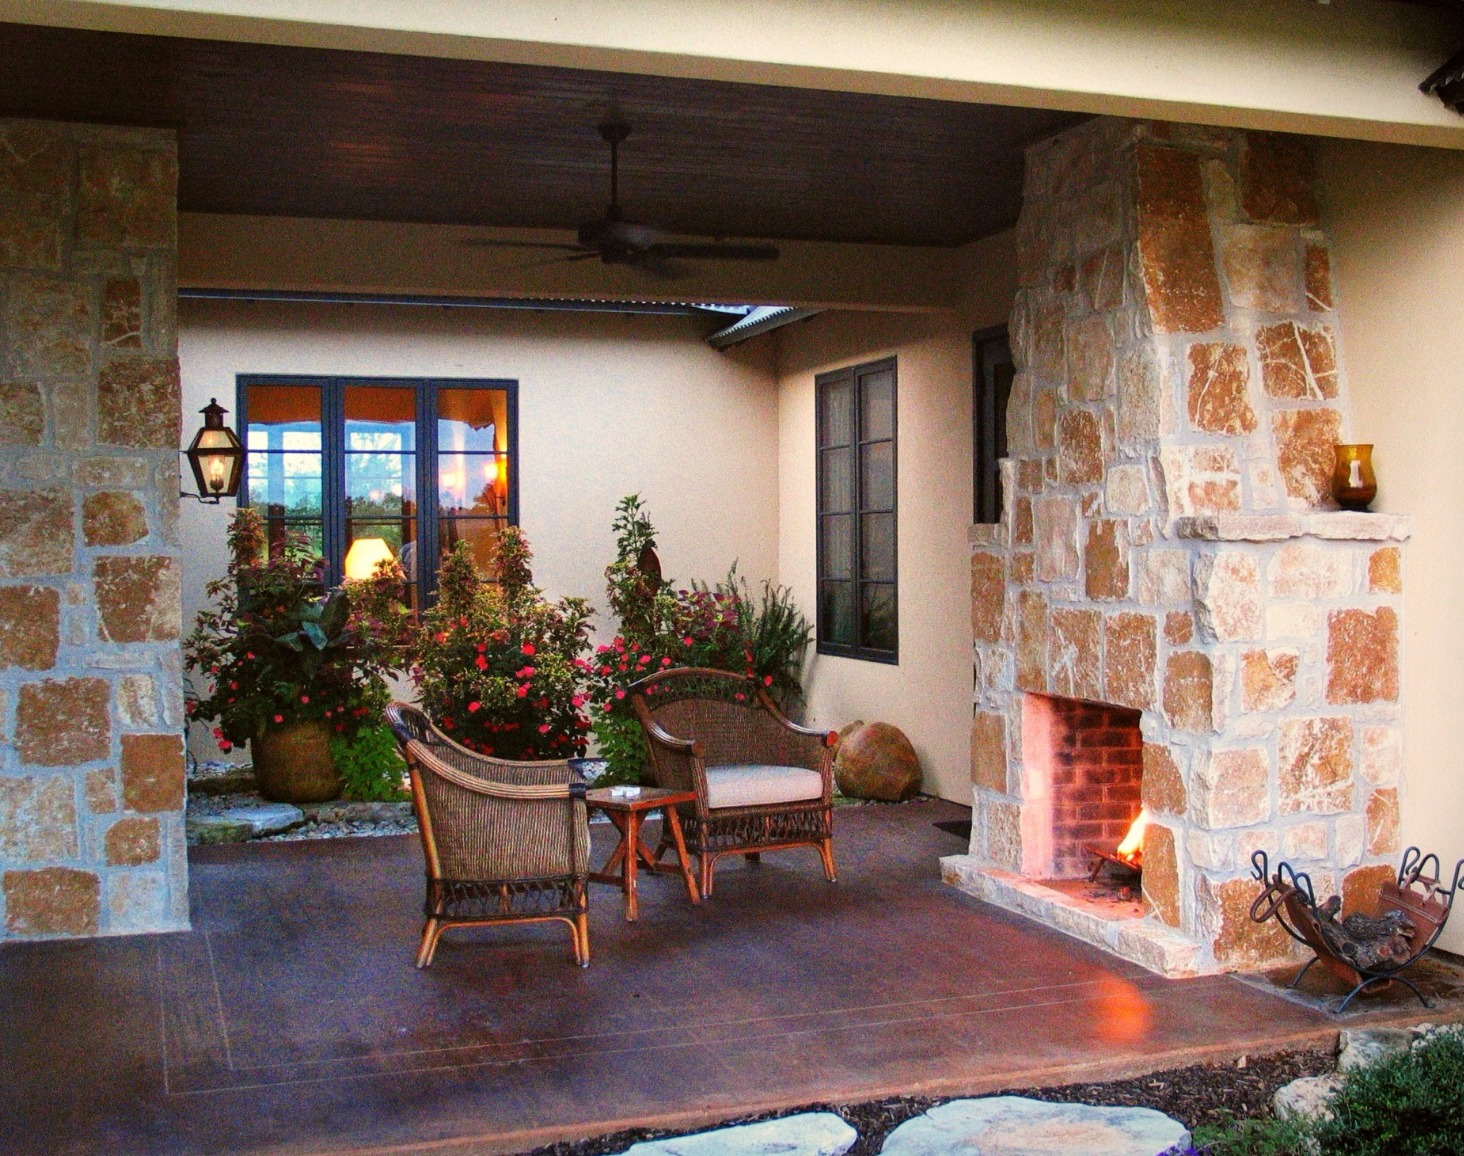 Outdoor Living & Fireplace